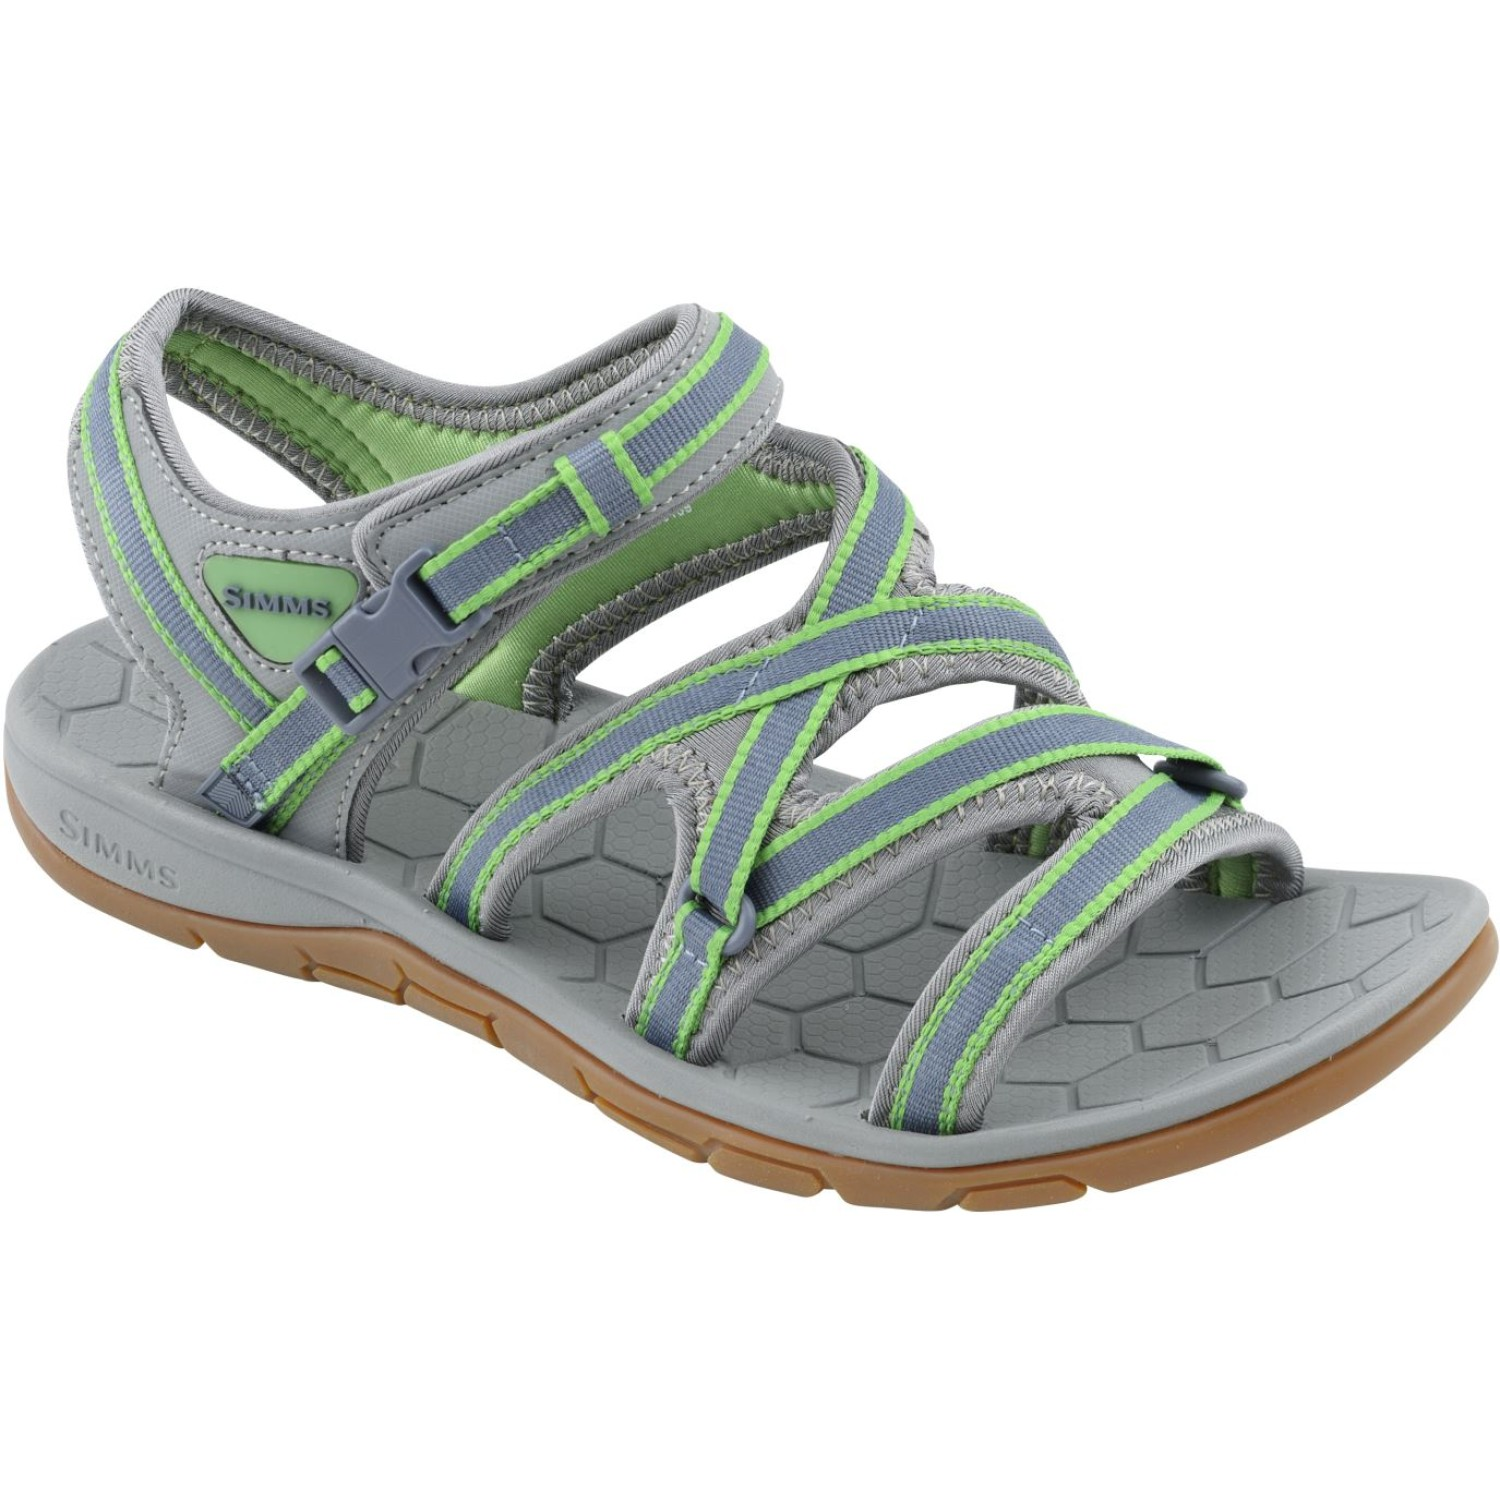 Simms Women's Clearwater Sandal Spring Green